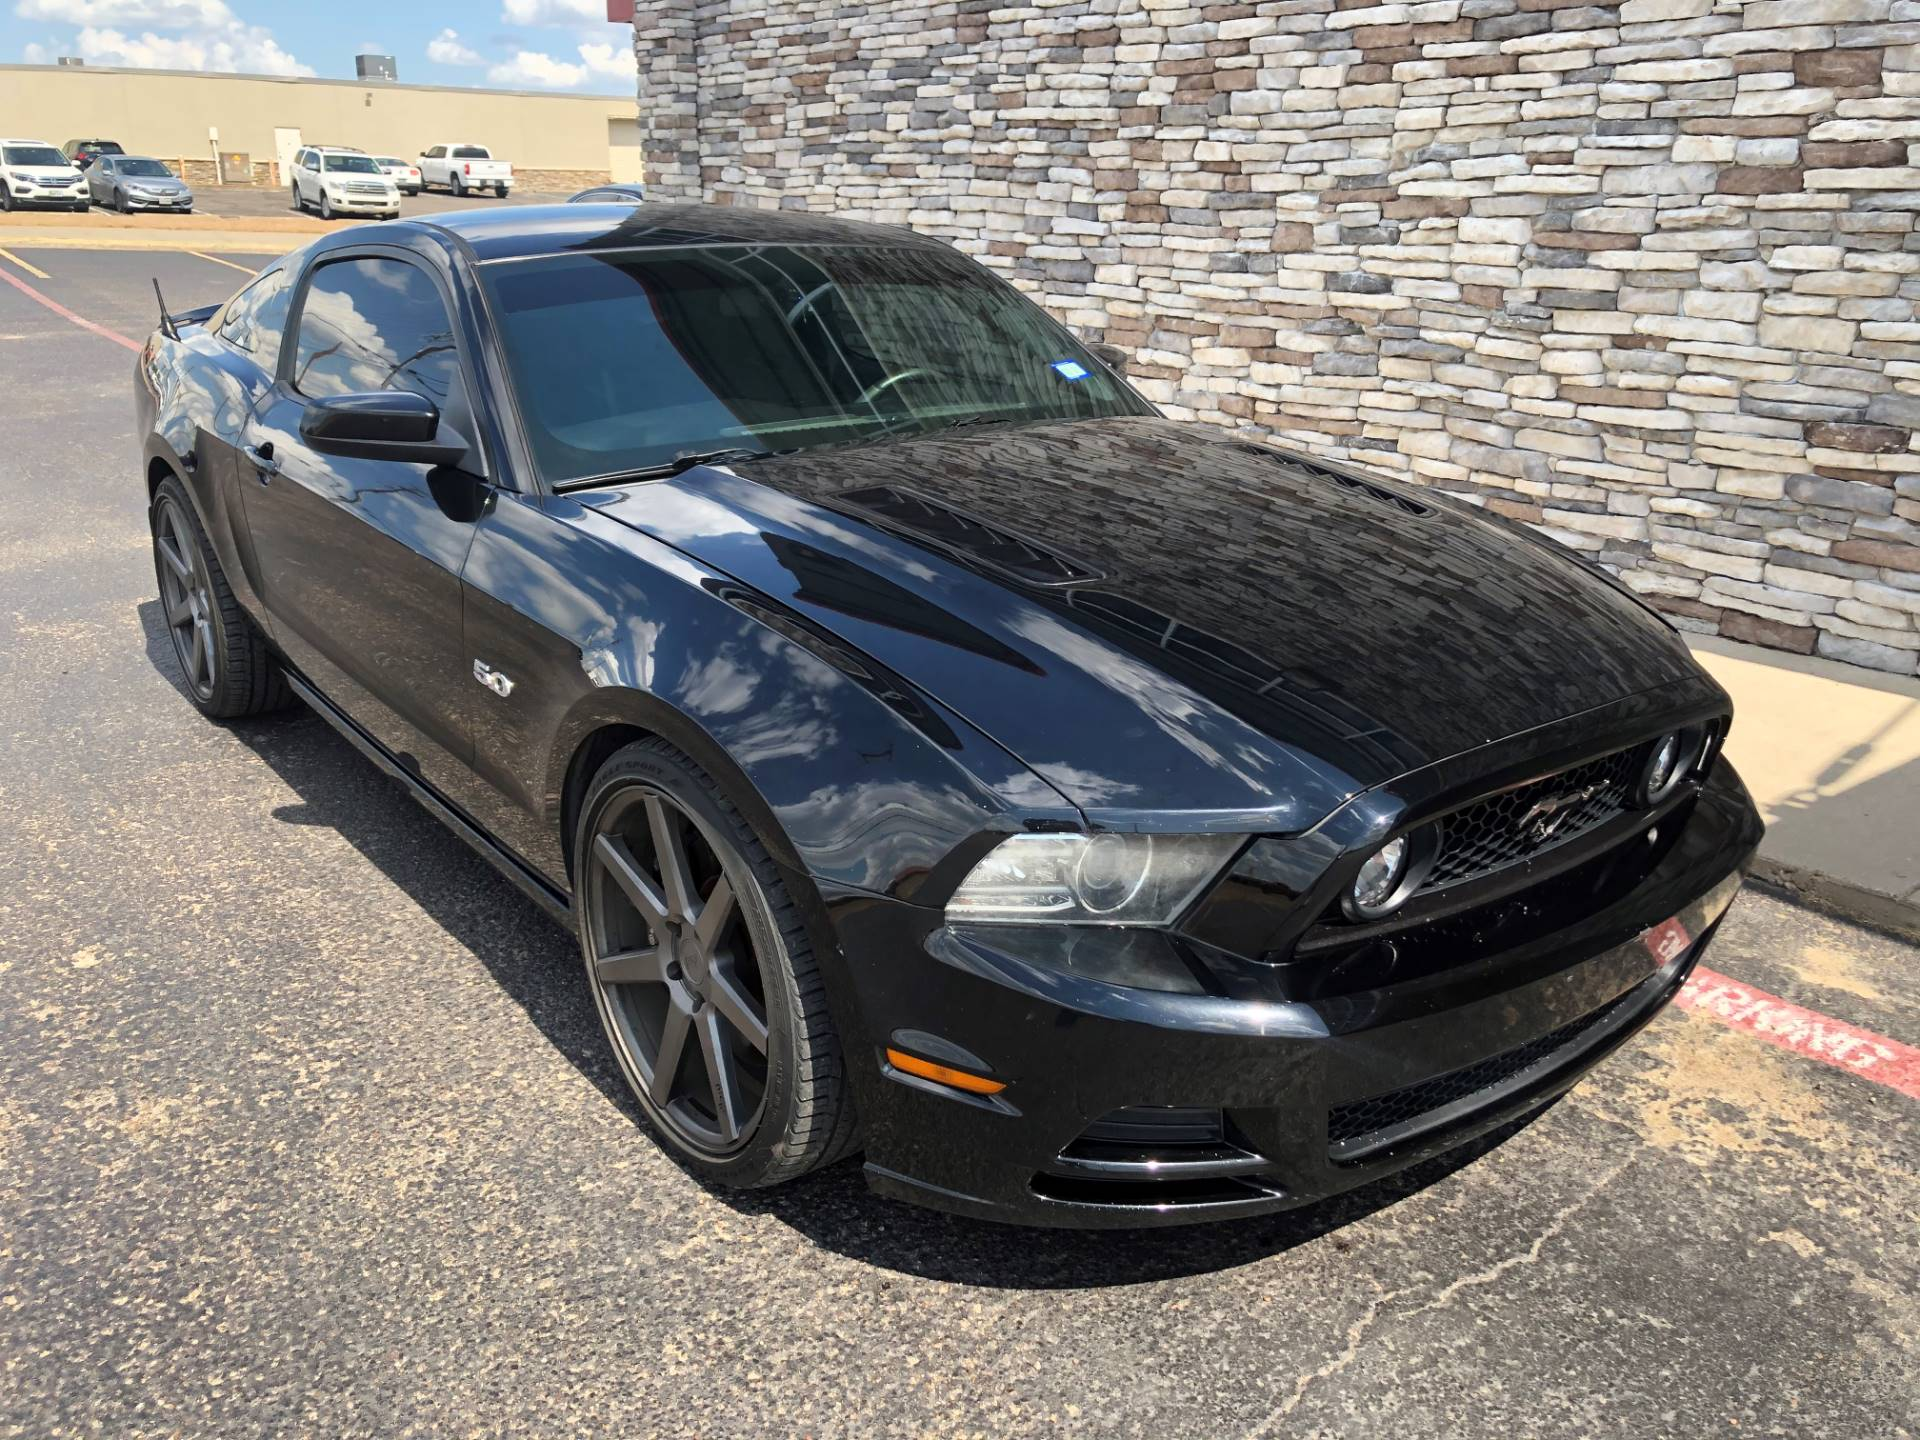 2013 Ford mustang in Waco, Texas - Photo 2